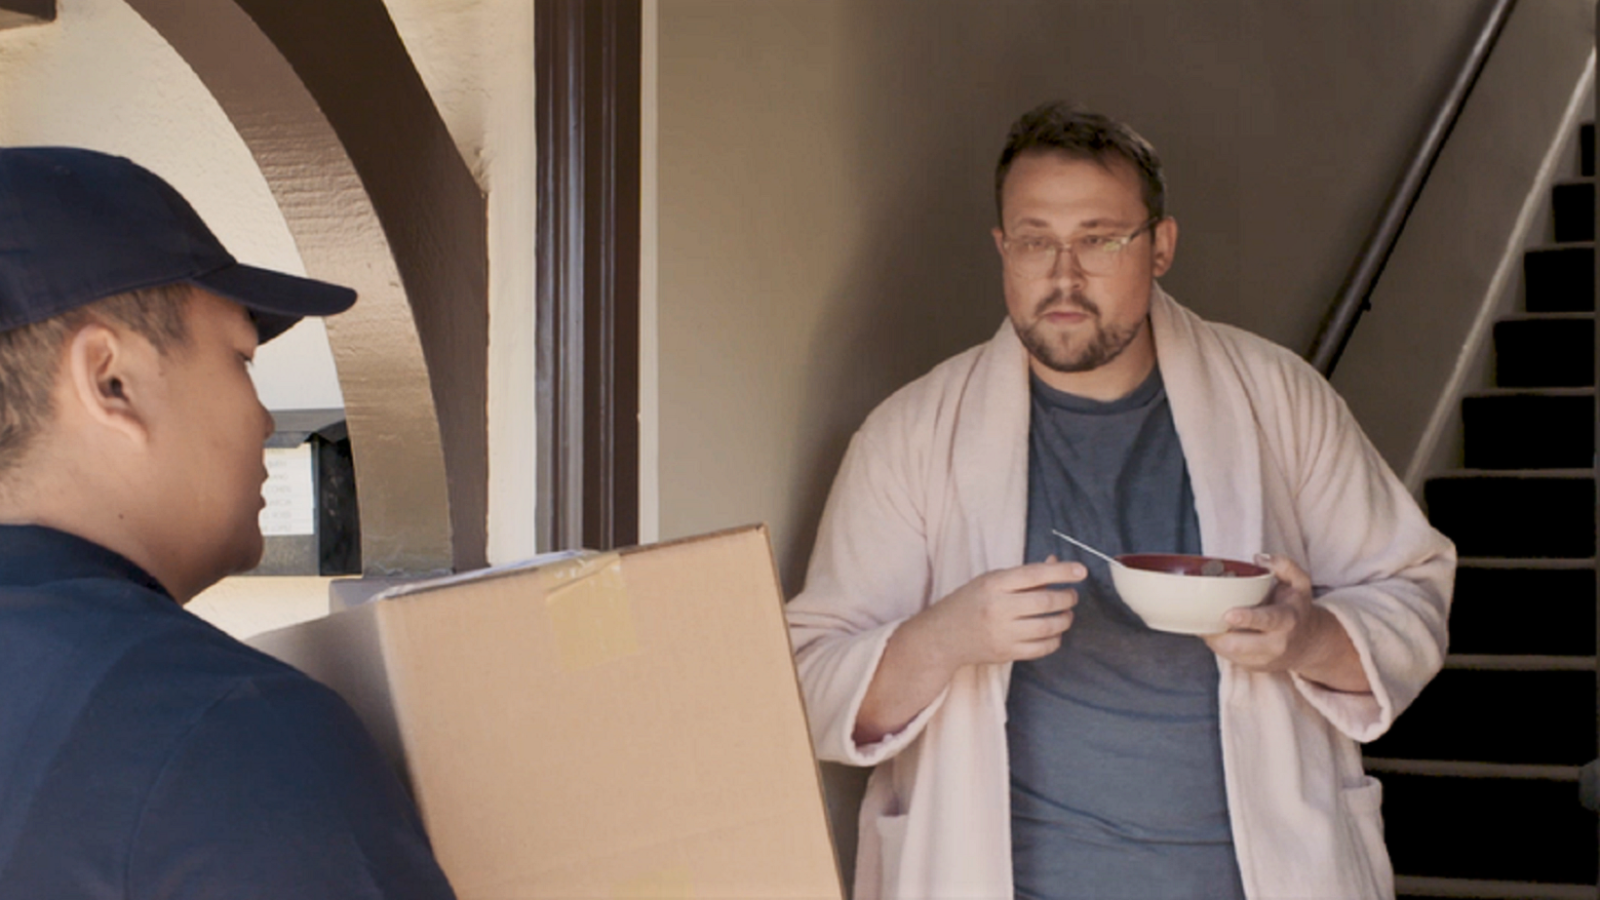 man in bathrobe receiving package delivery